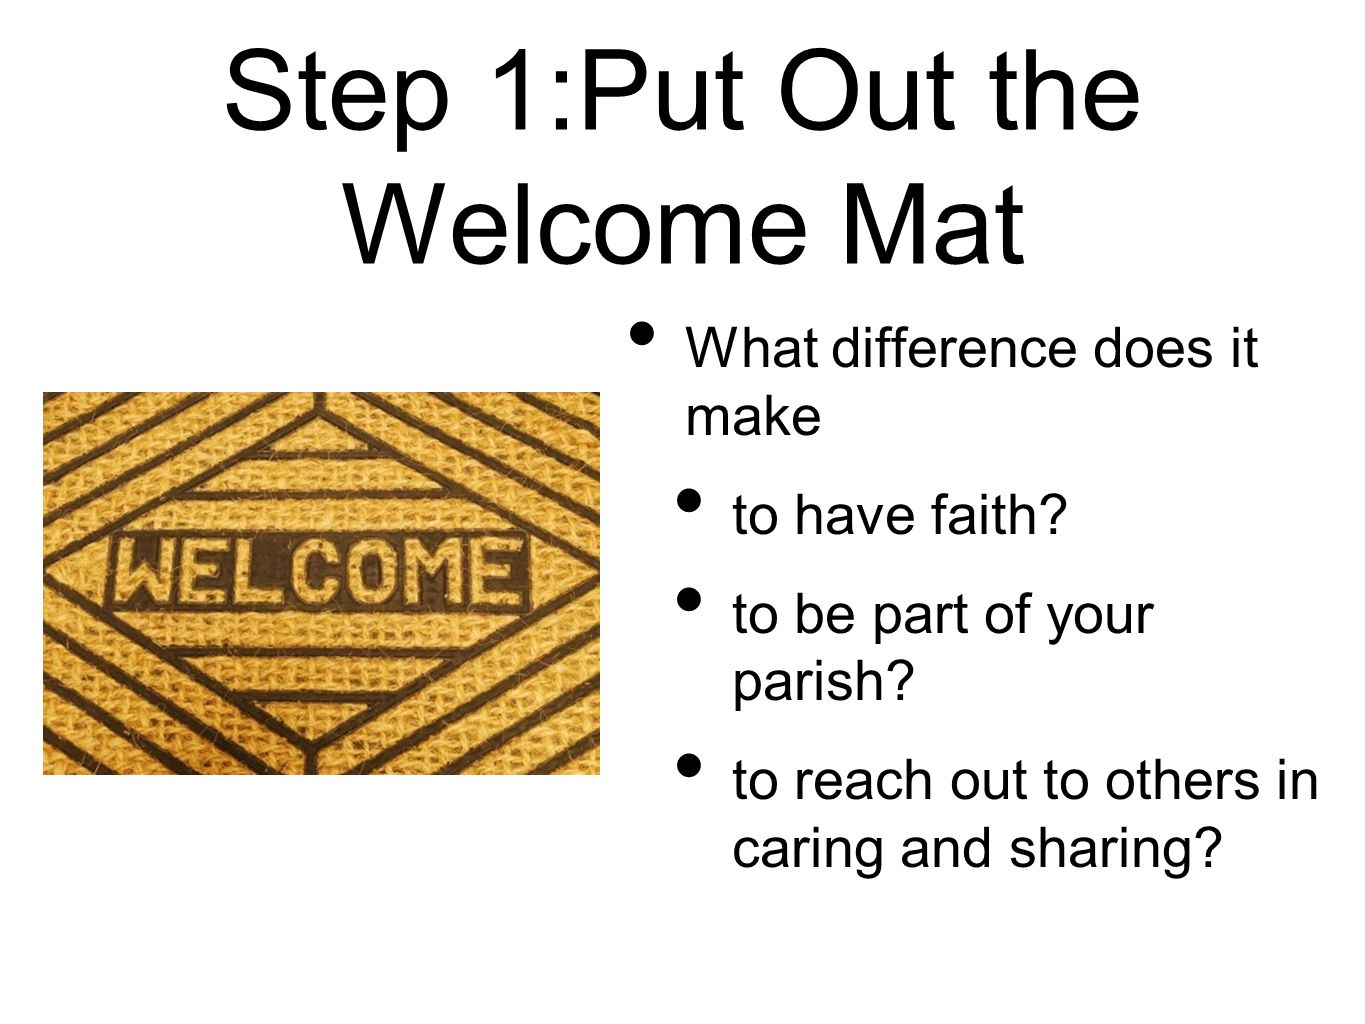 Step 1:Put Out the Welcome Mat What difference does it make to have faith? to be part of your parish? to reach out to others in caring and sharing?